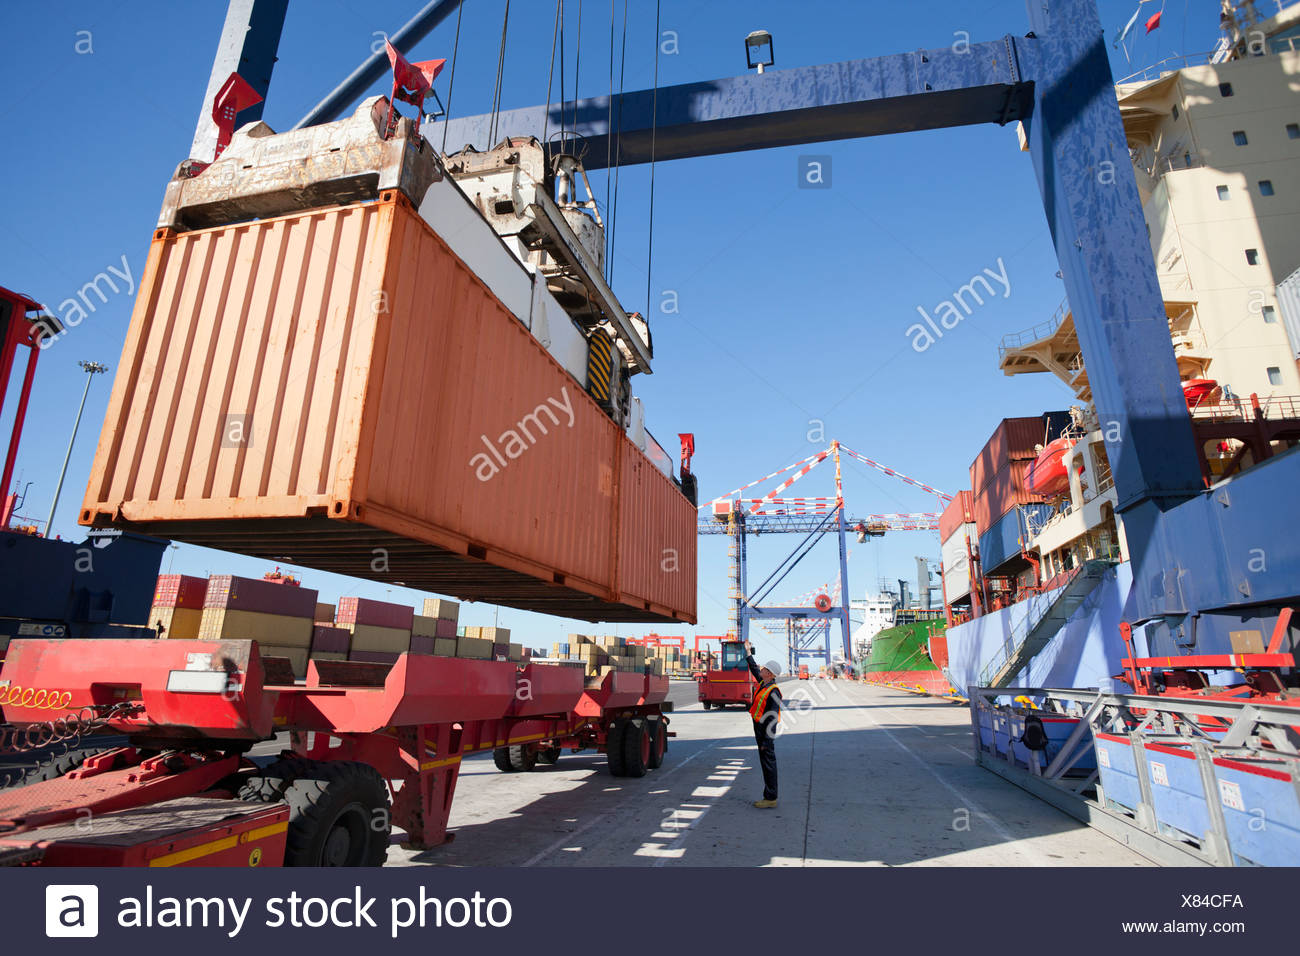 Crane unloading container ship at commercial dock - Stock Image